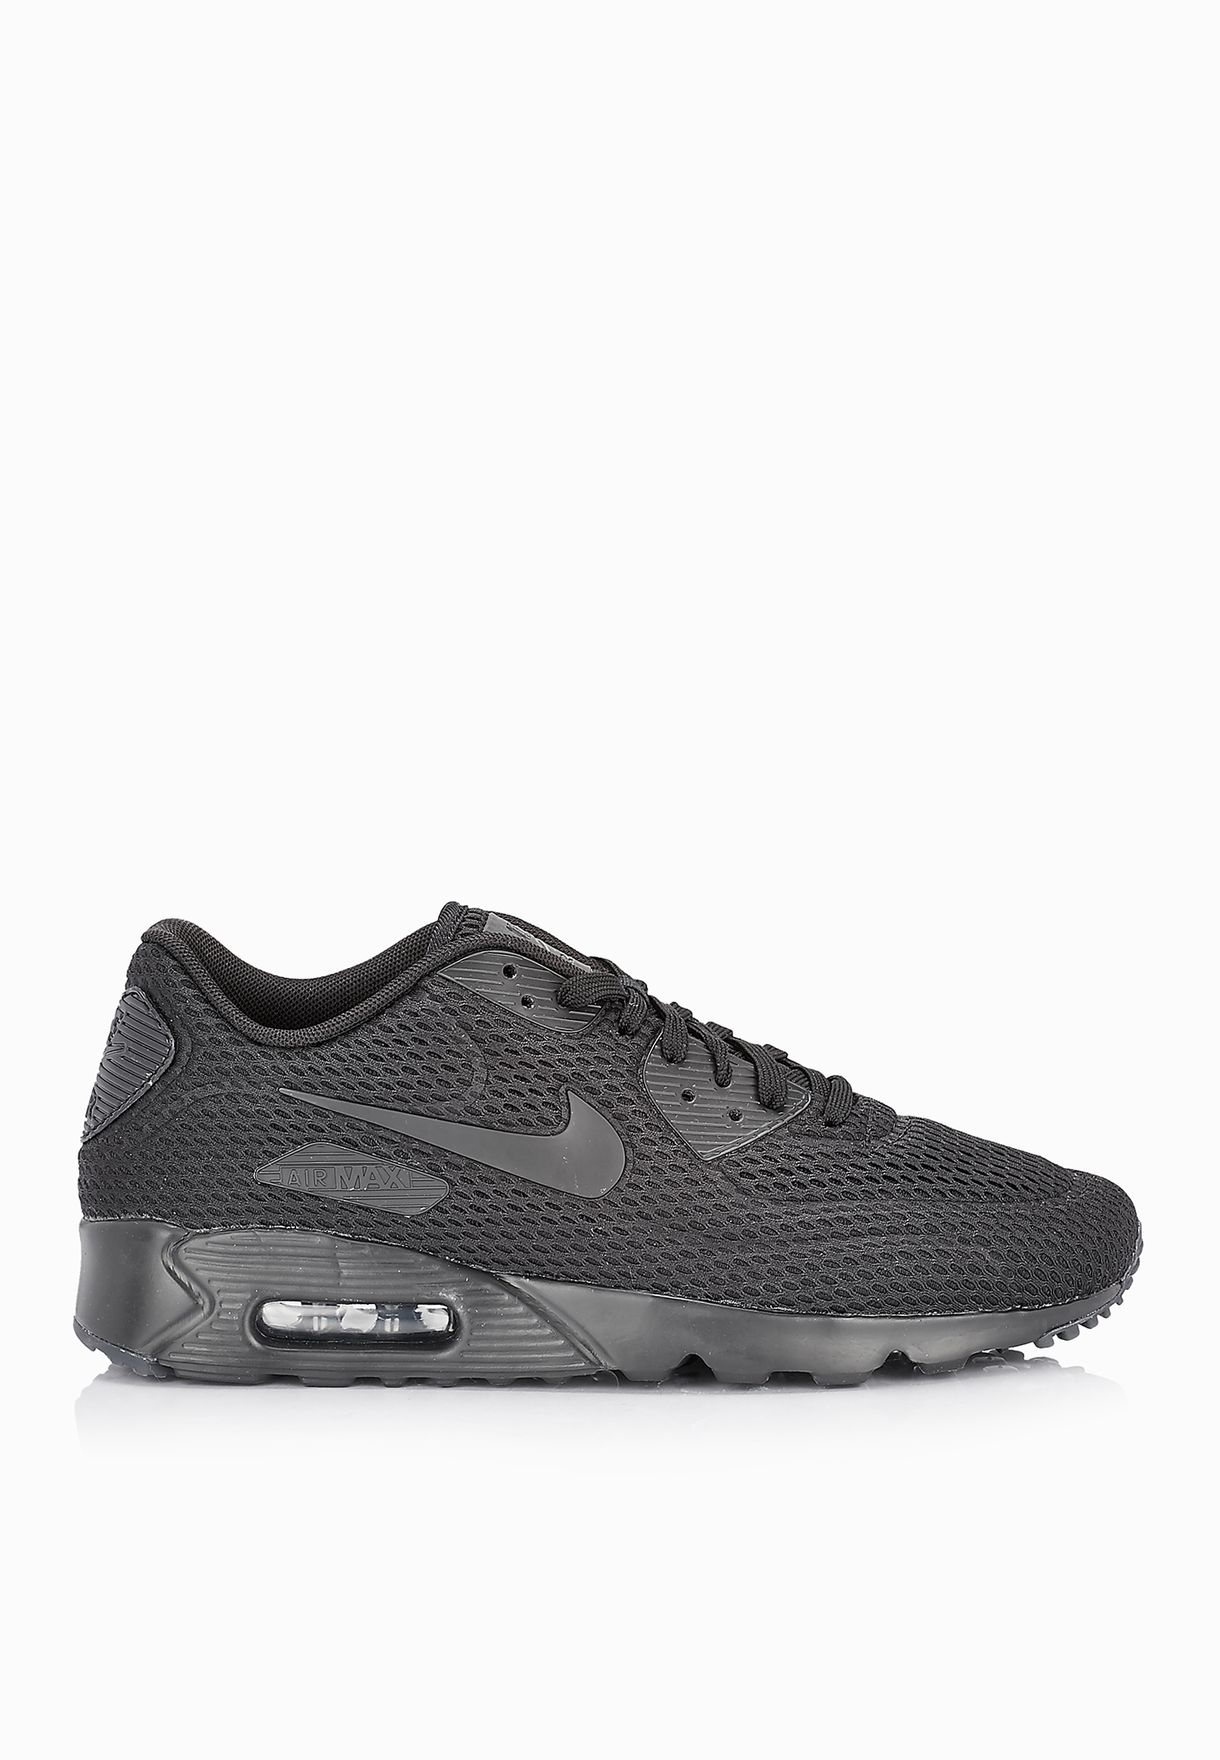 separation shoes 74320 501d4 Air Max 90 Ultra BR